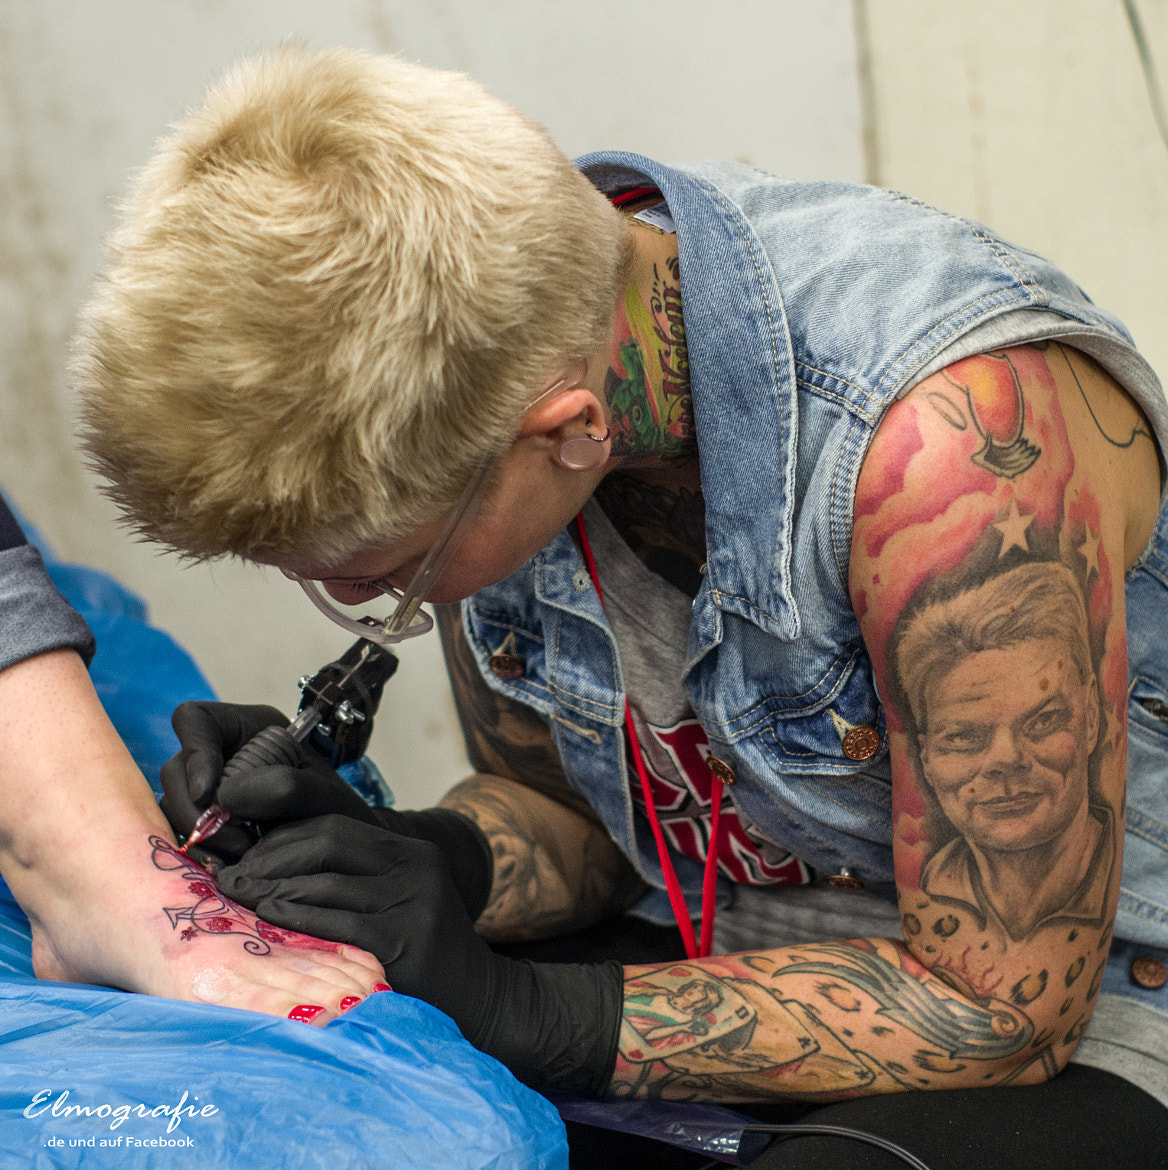 Photograph working on tattoo by Elmar H. on 500px